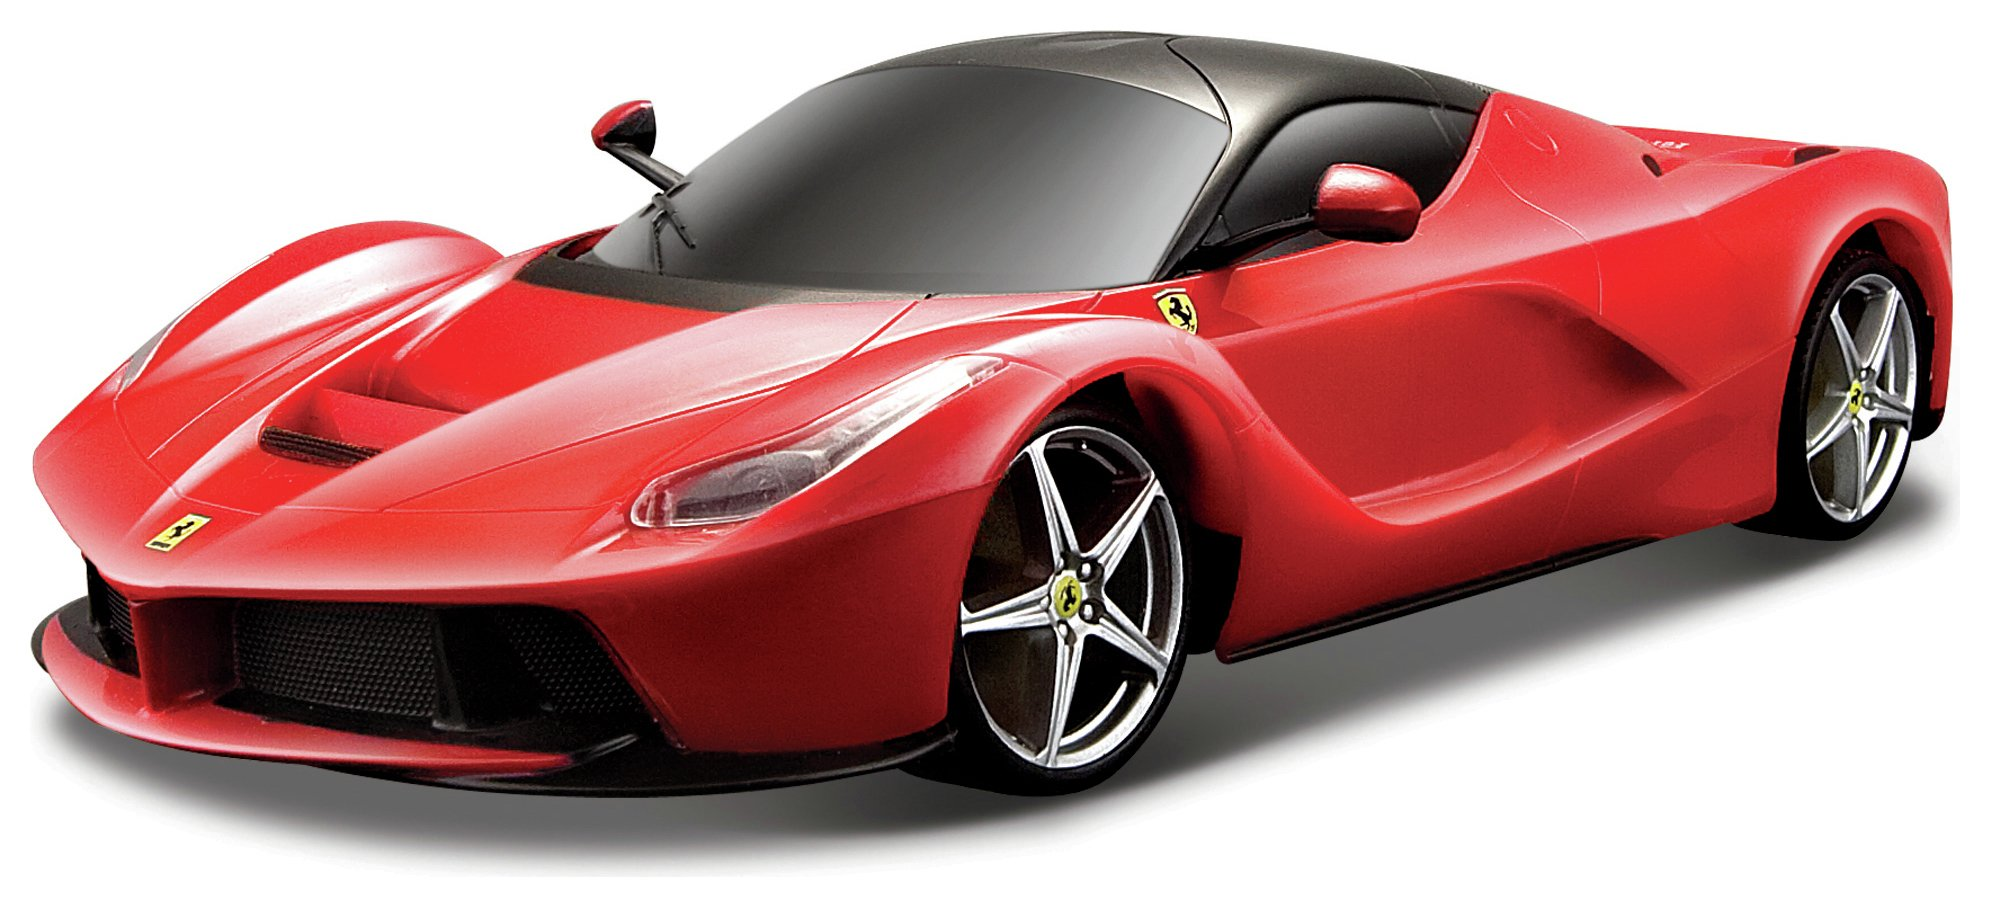 Image of Maisto - 1:24 Laferrari